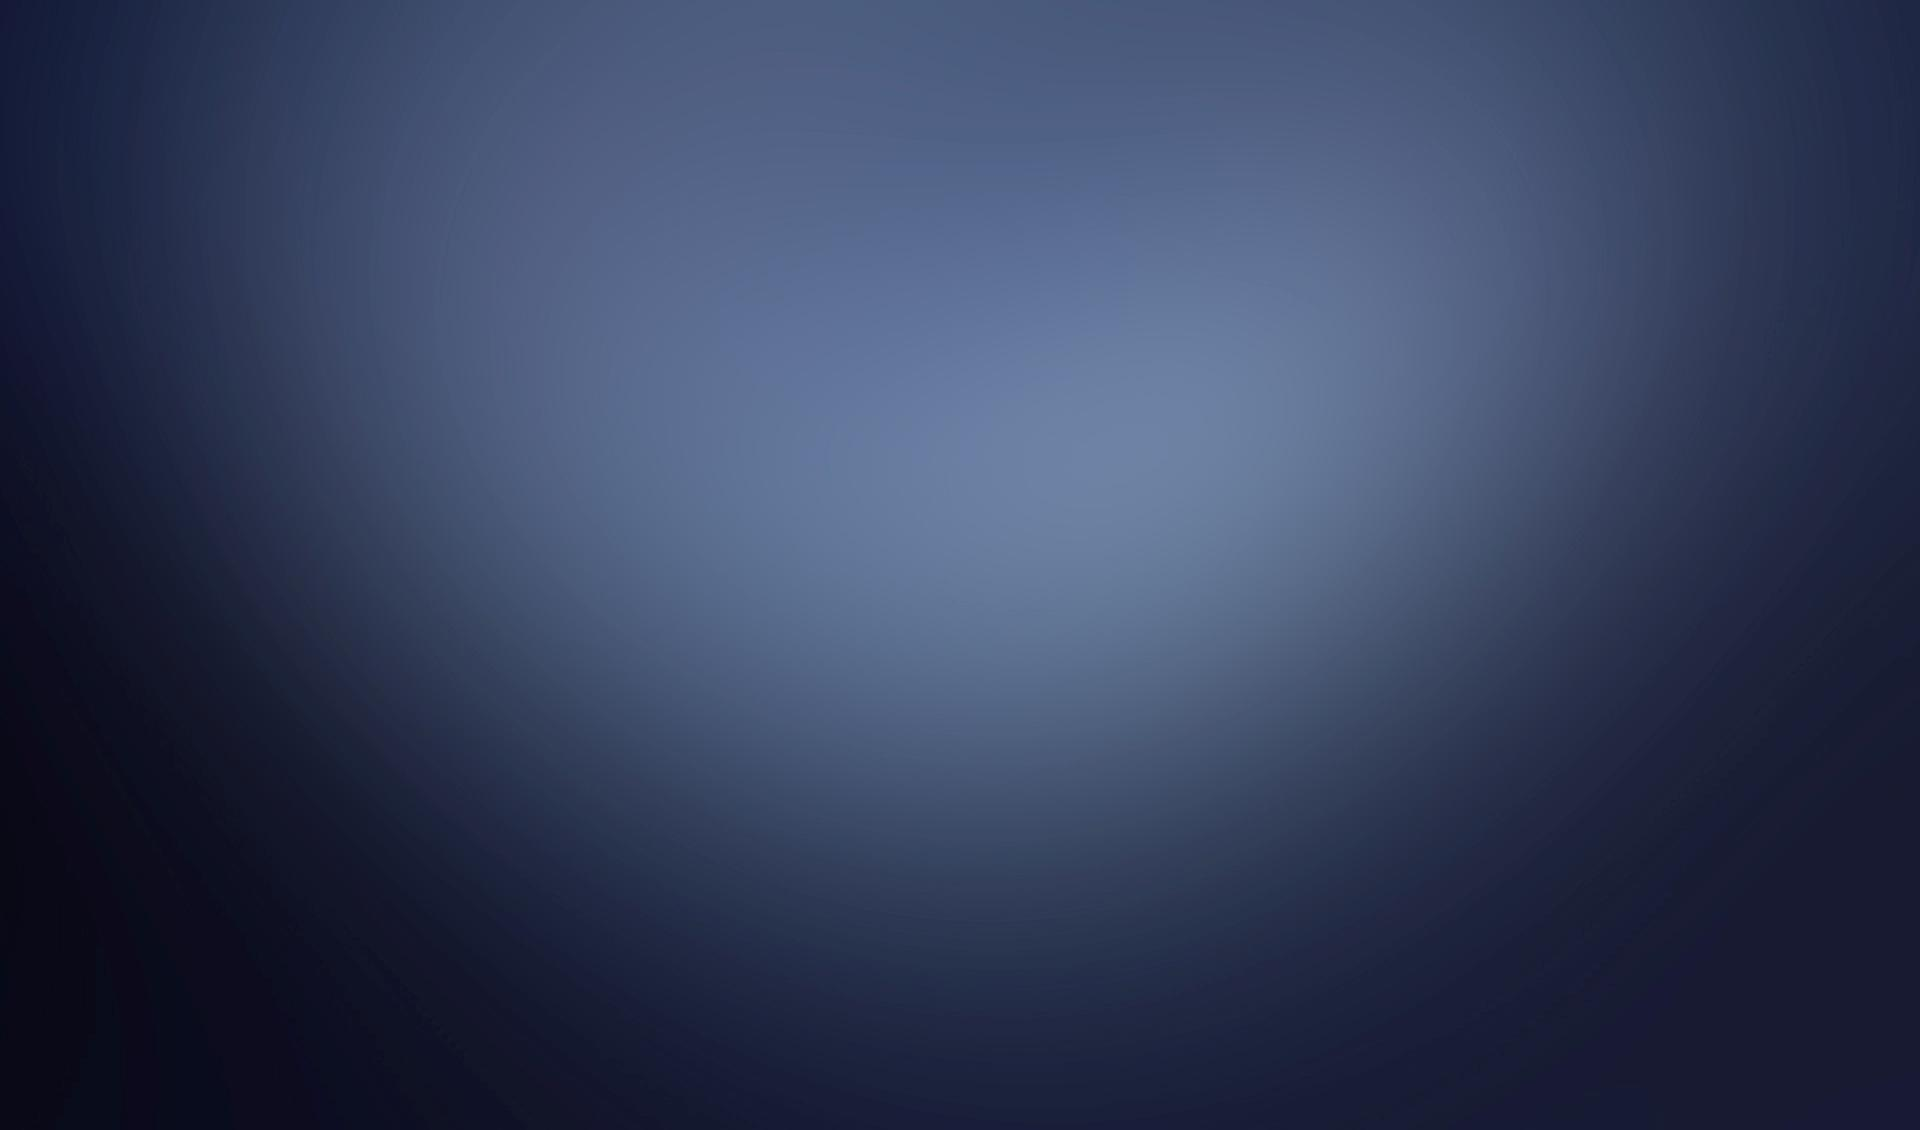 Blue blurry shades wallpapers HD quality